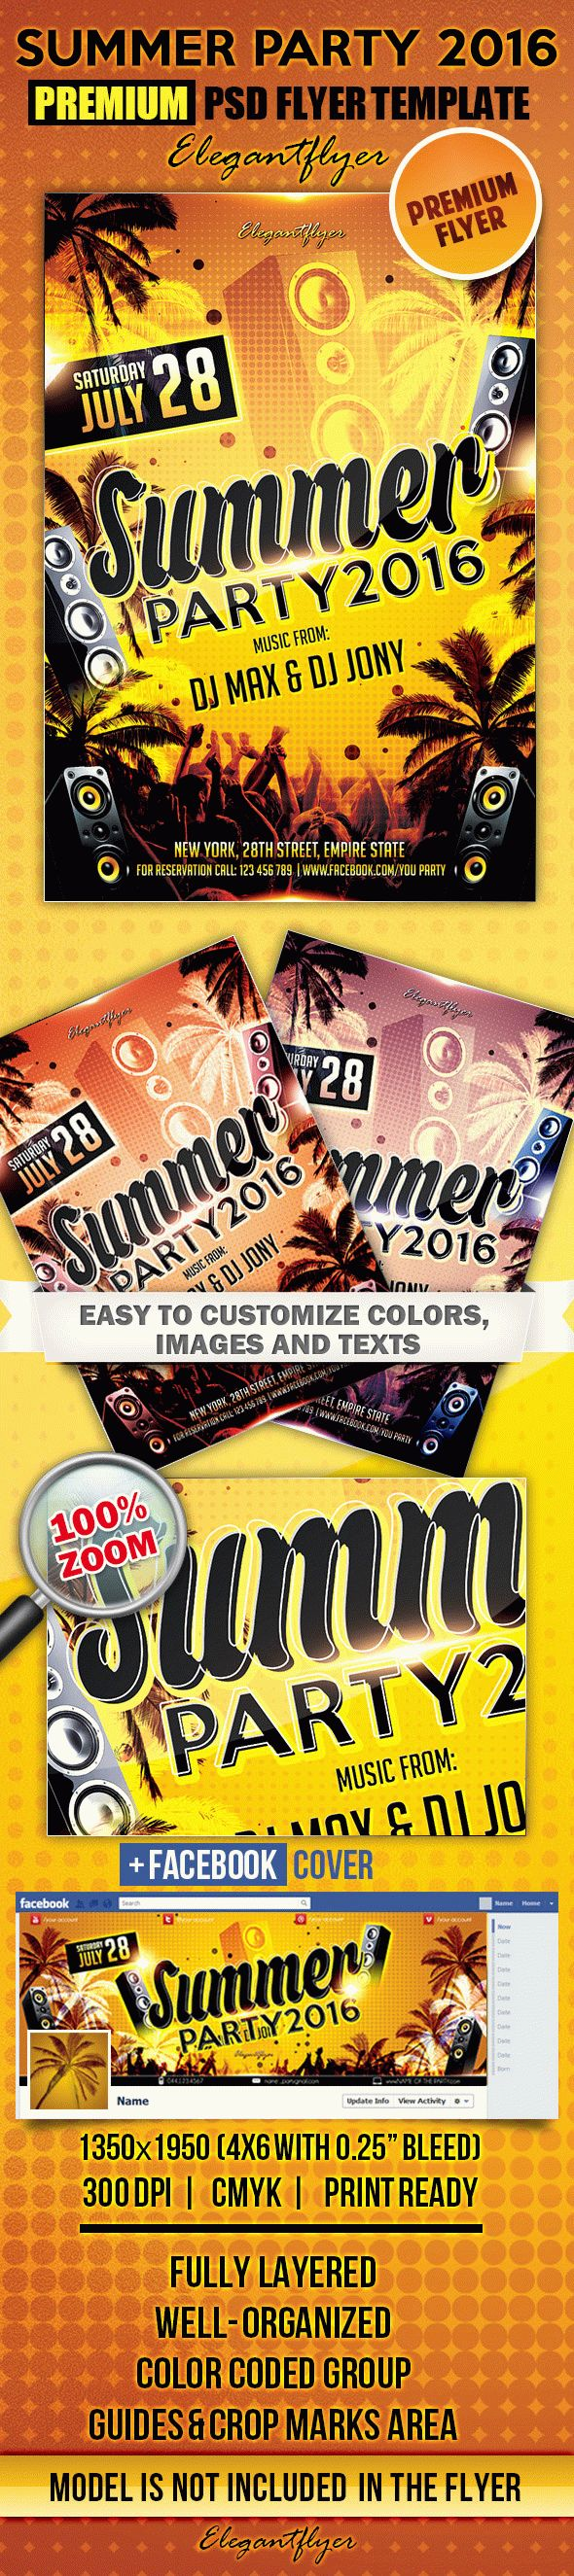 Summer party 2016 – Flyer PSD Template